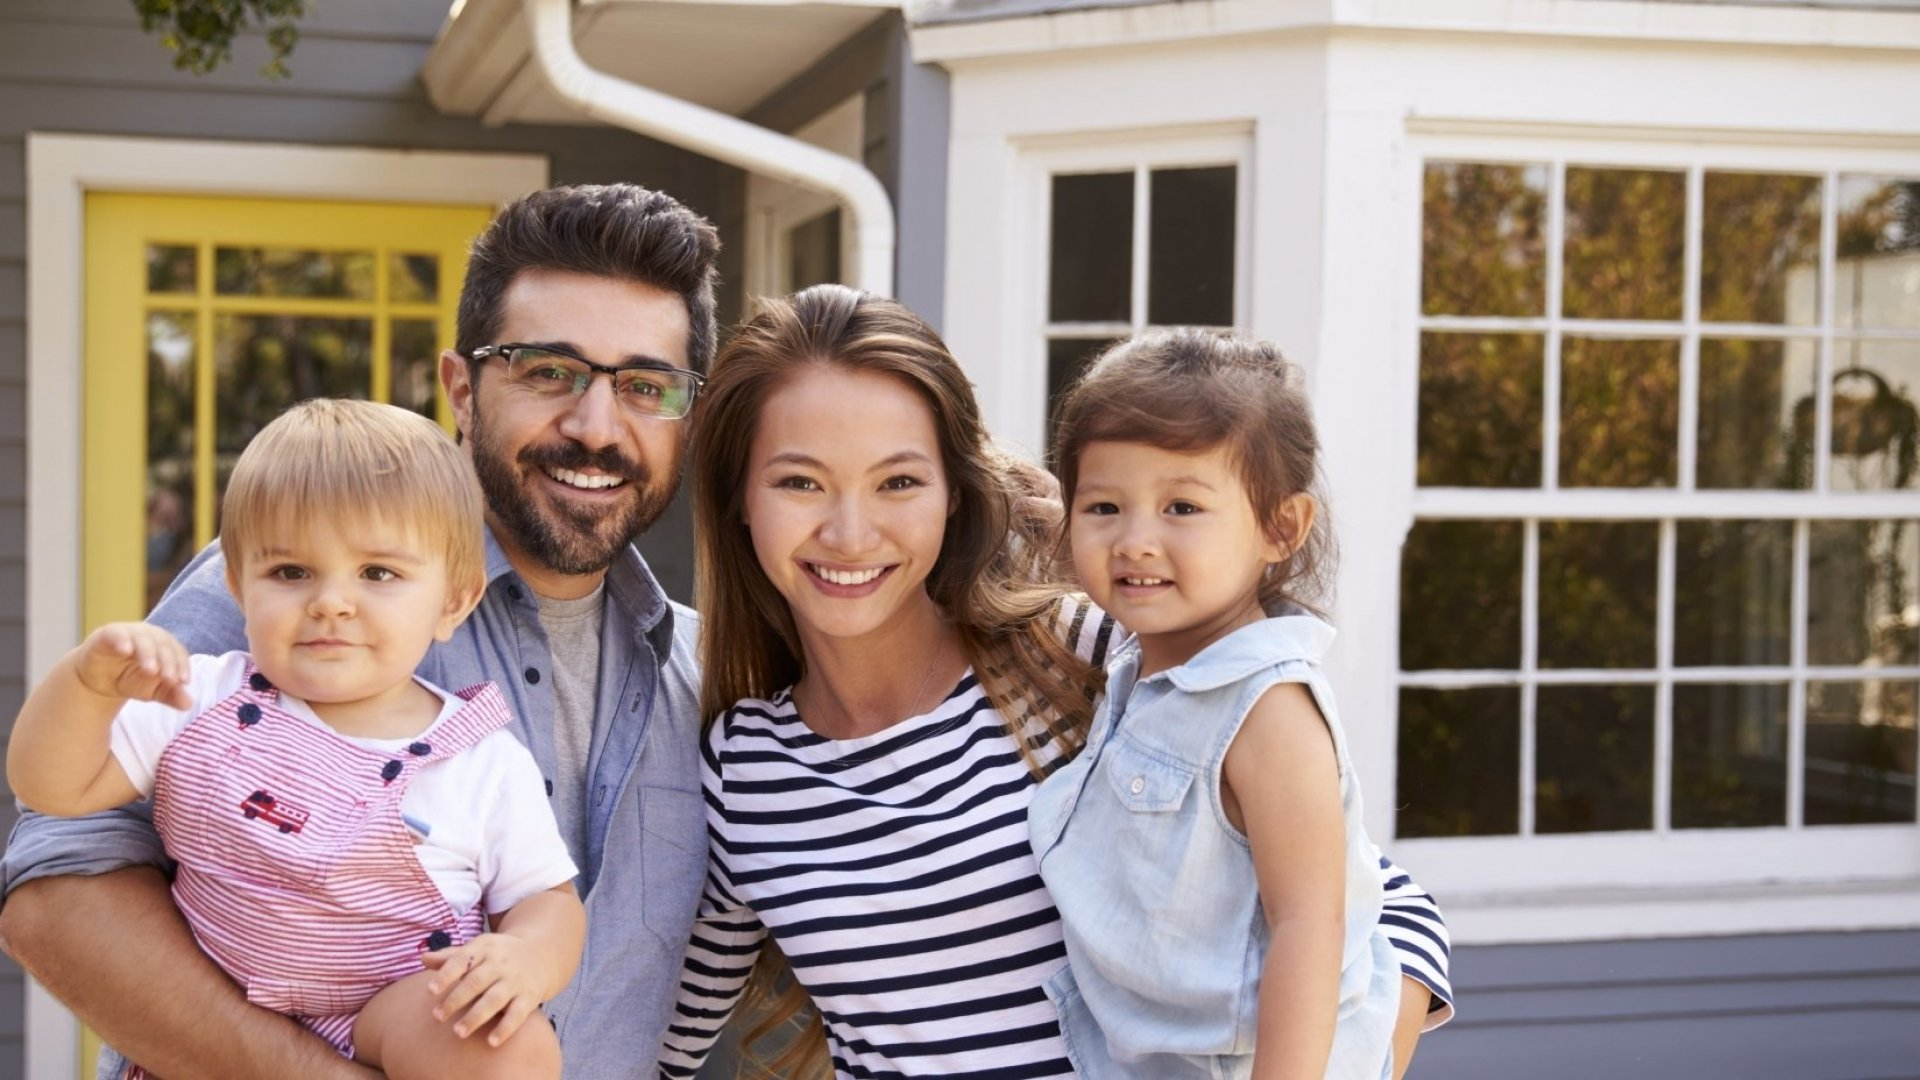 Study Finds 89 Percent of Millennials Want to Own a Home. But 67 Percent Will Have to Wait 20 Years or More to Afford It